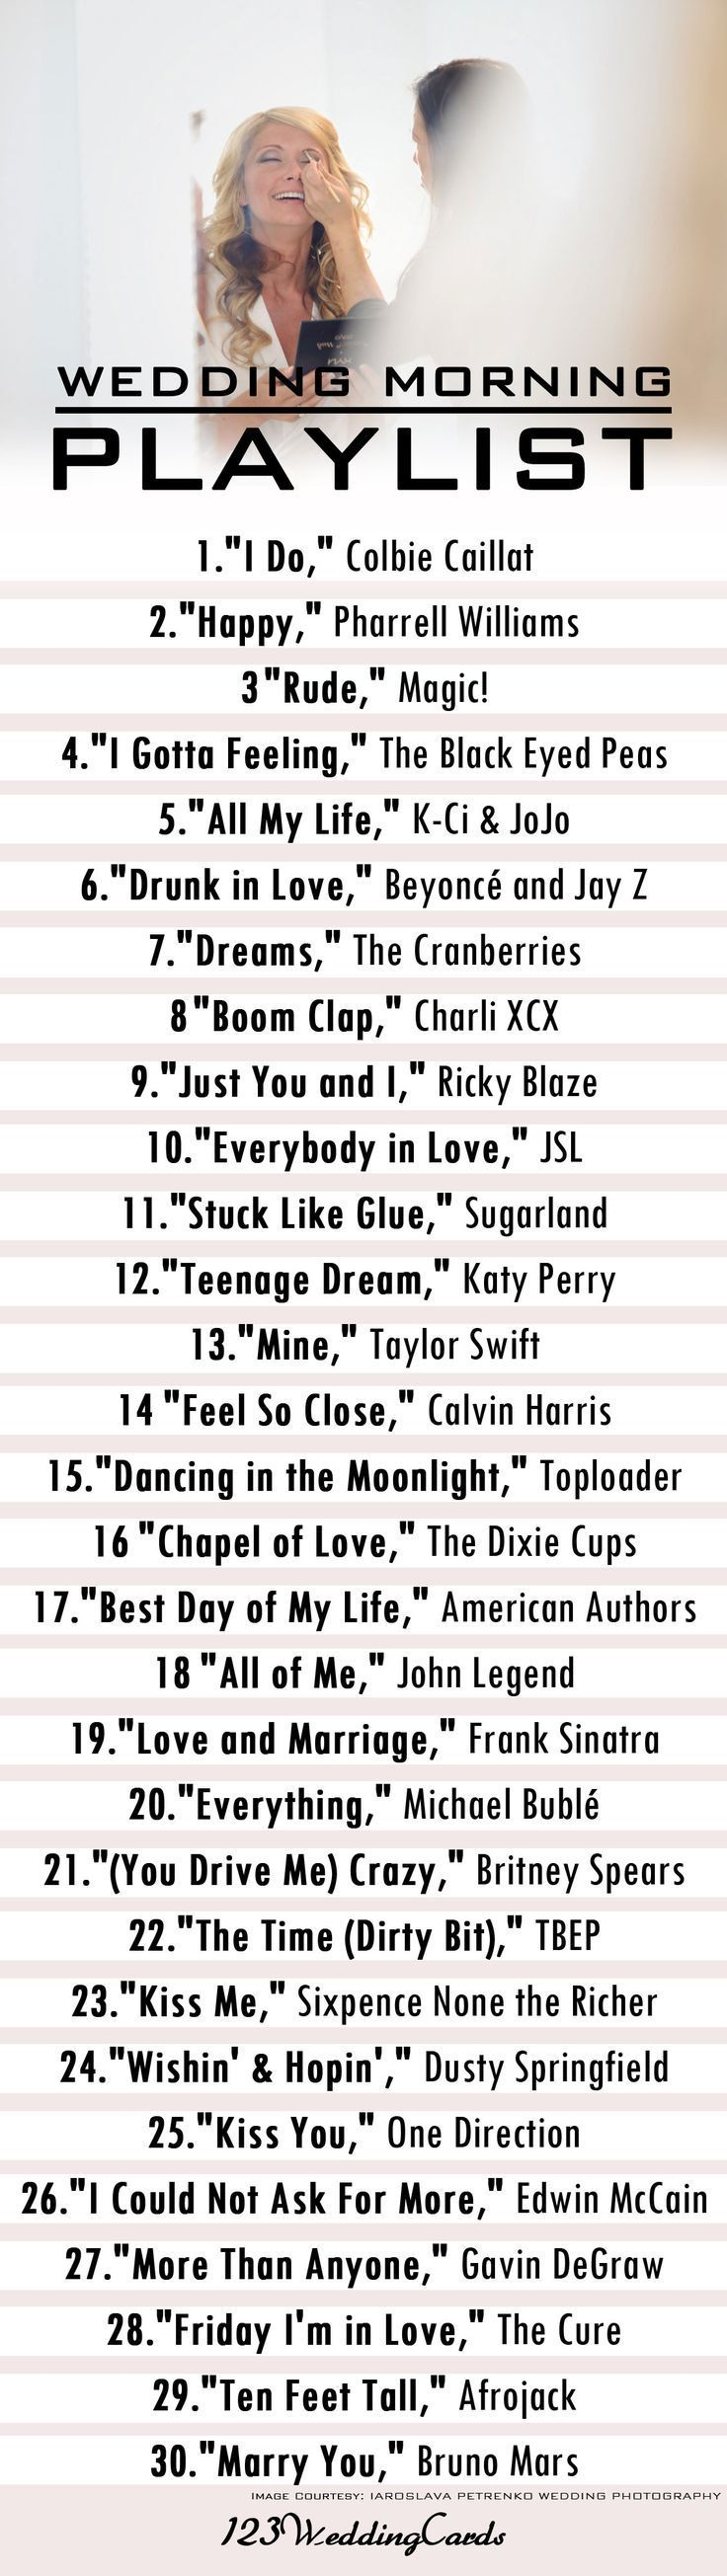 45 First Dance Songs For Every Getting Married Couple #musicsongs